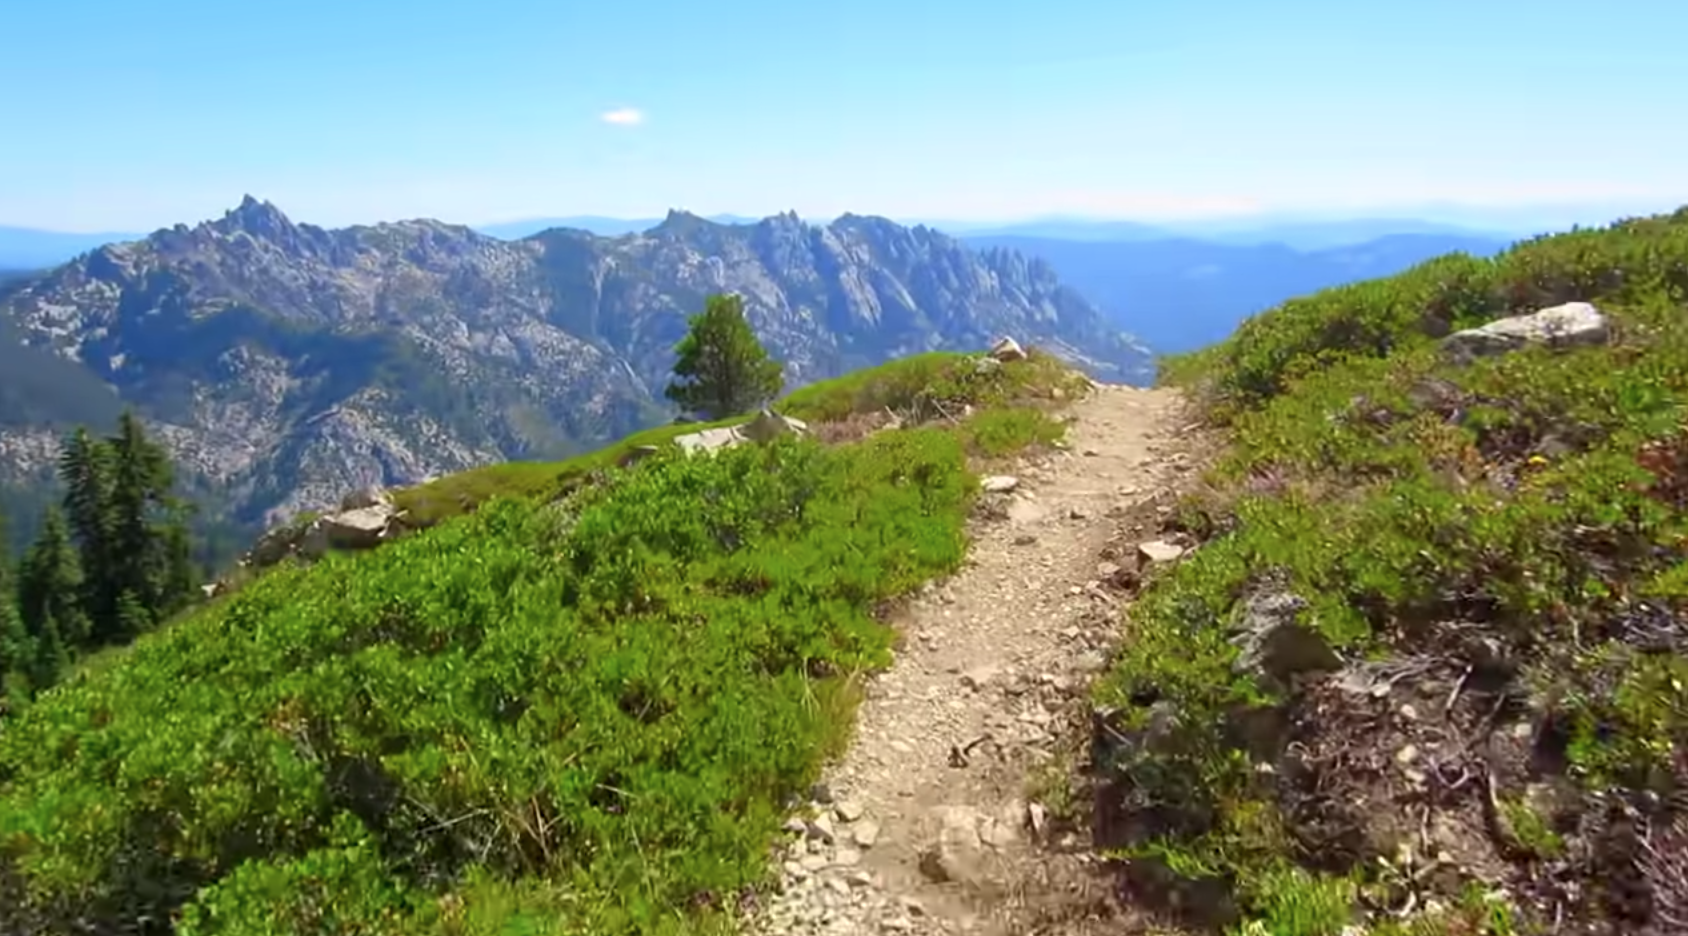 Take A 3-Minute Tour of This 2,660-Mile Trail That Goes Right Through Oregon